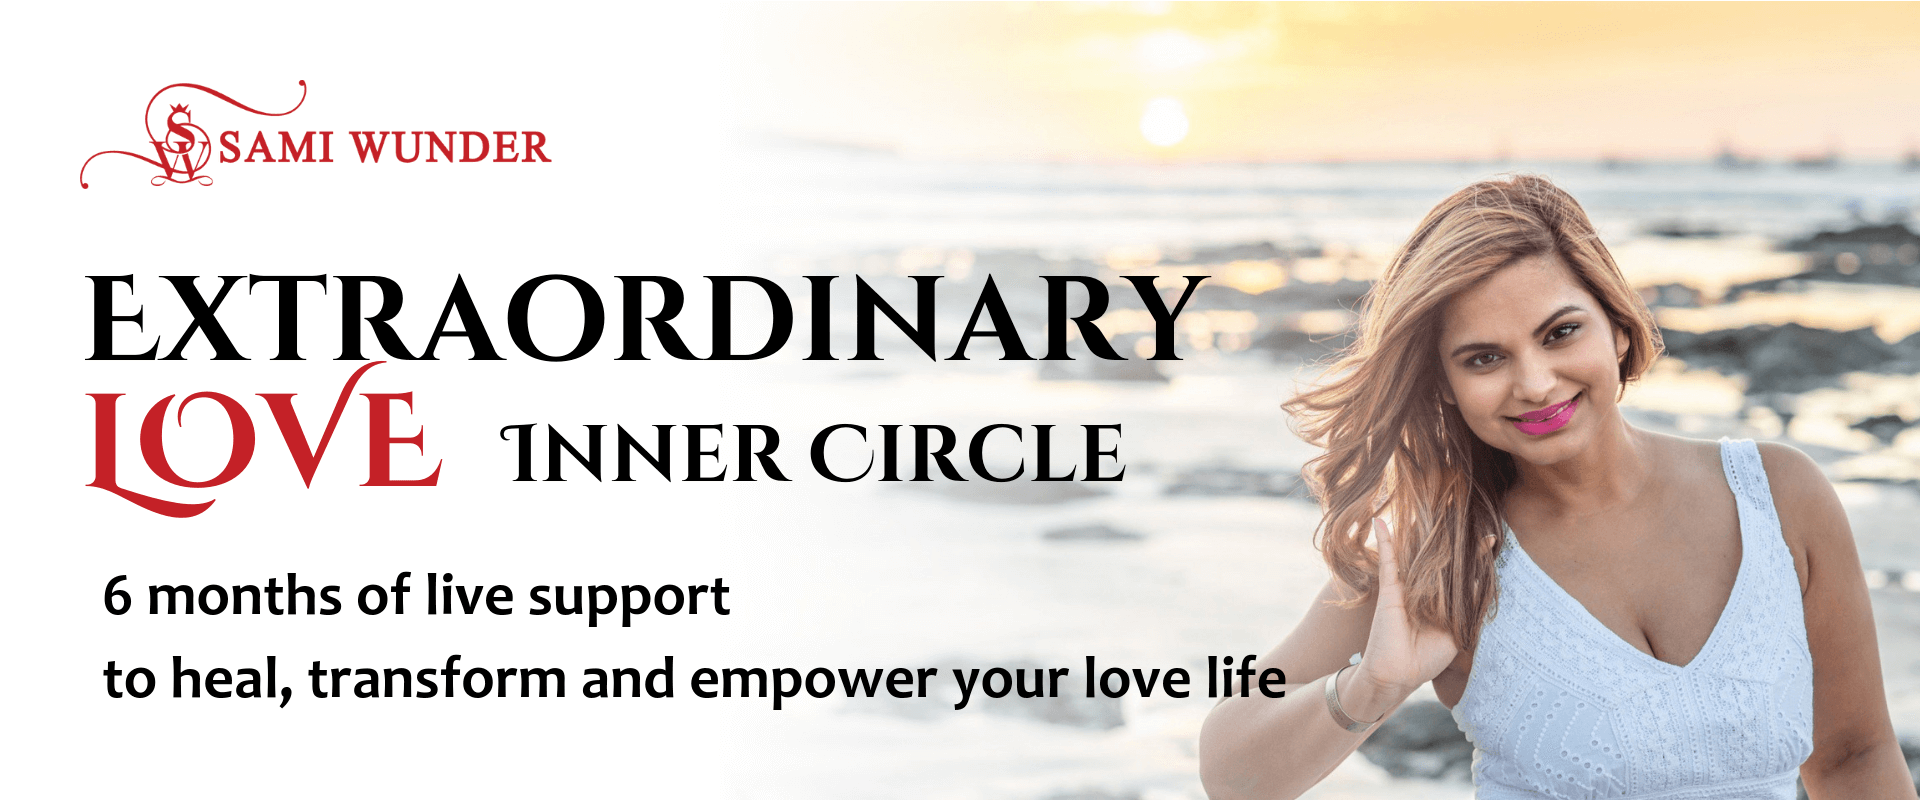 from divorced to engaged with the support of the inner circle